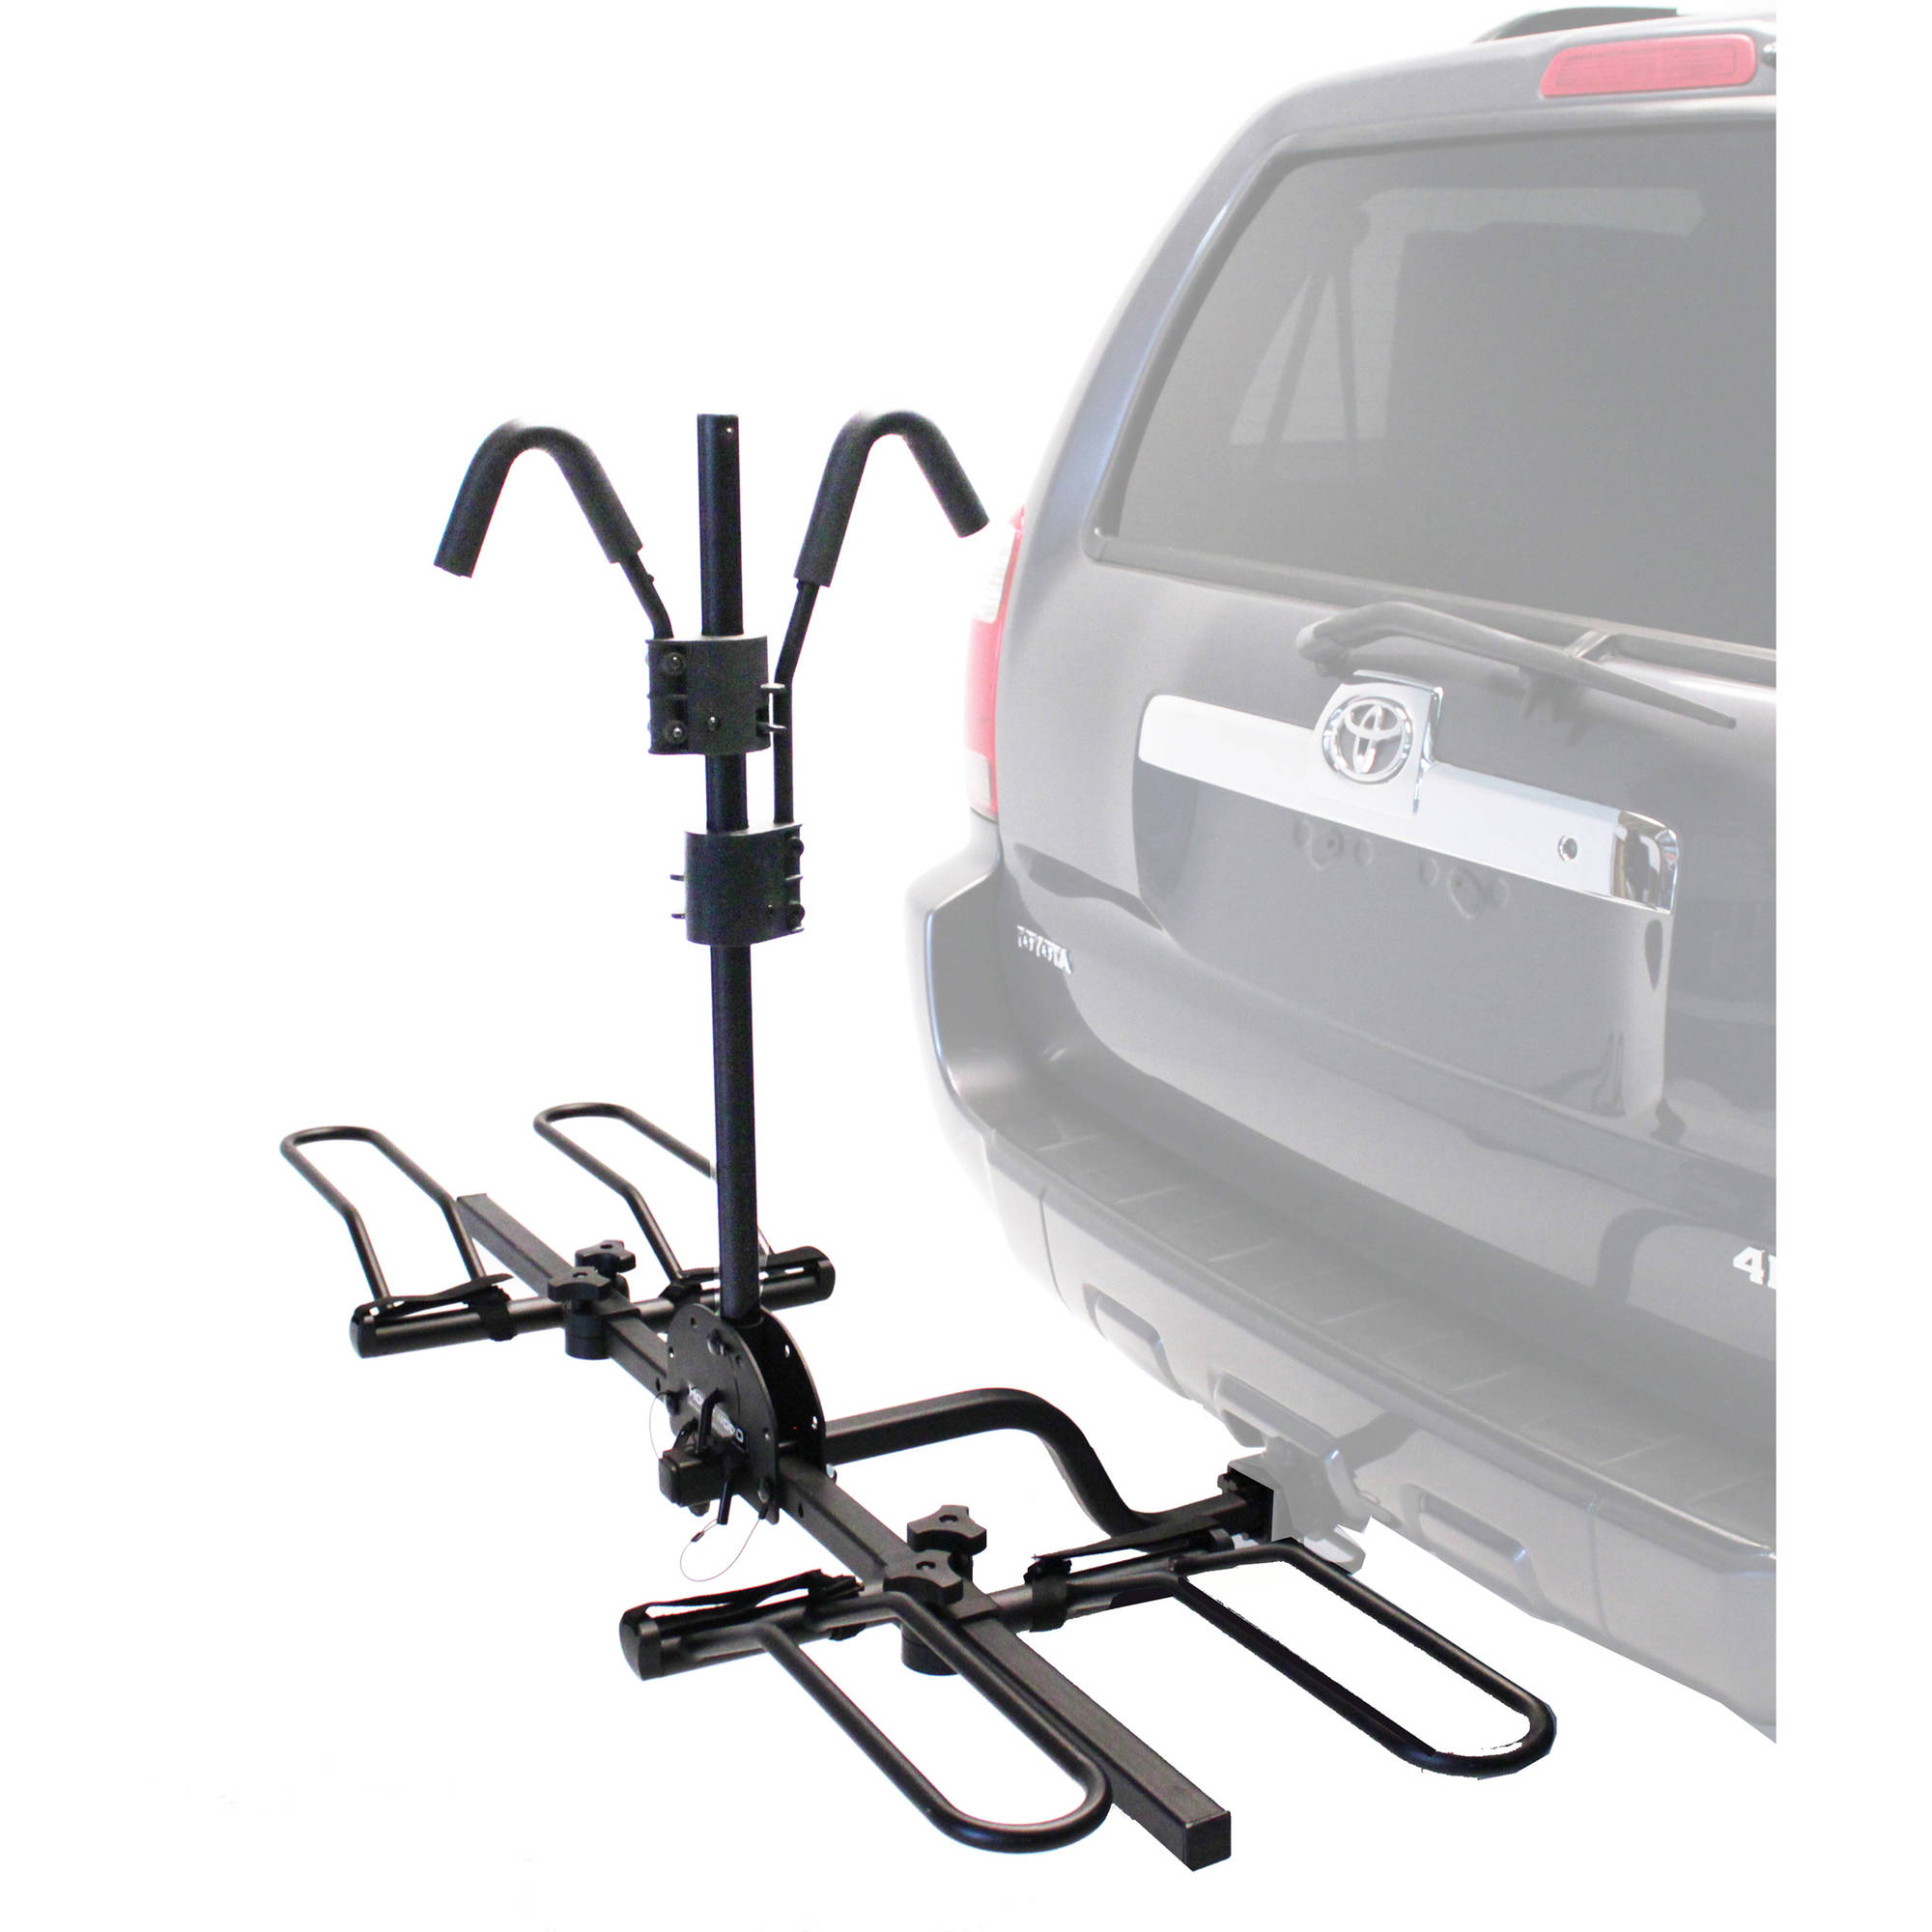 Hollywood Racks Trail Rider Bike Rack